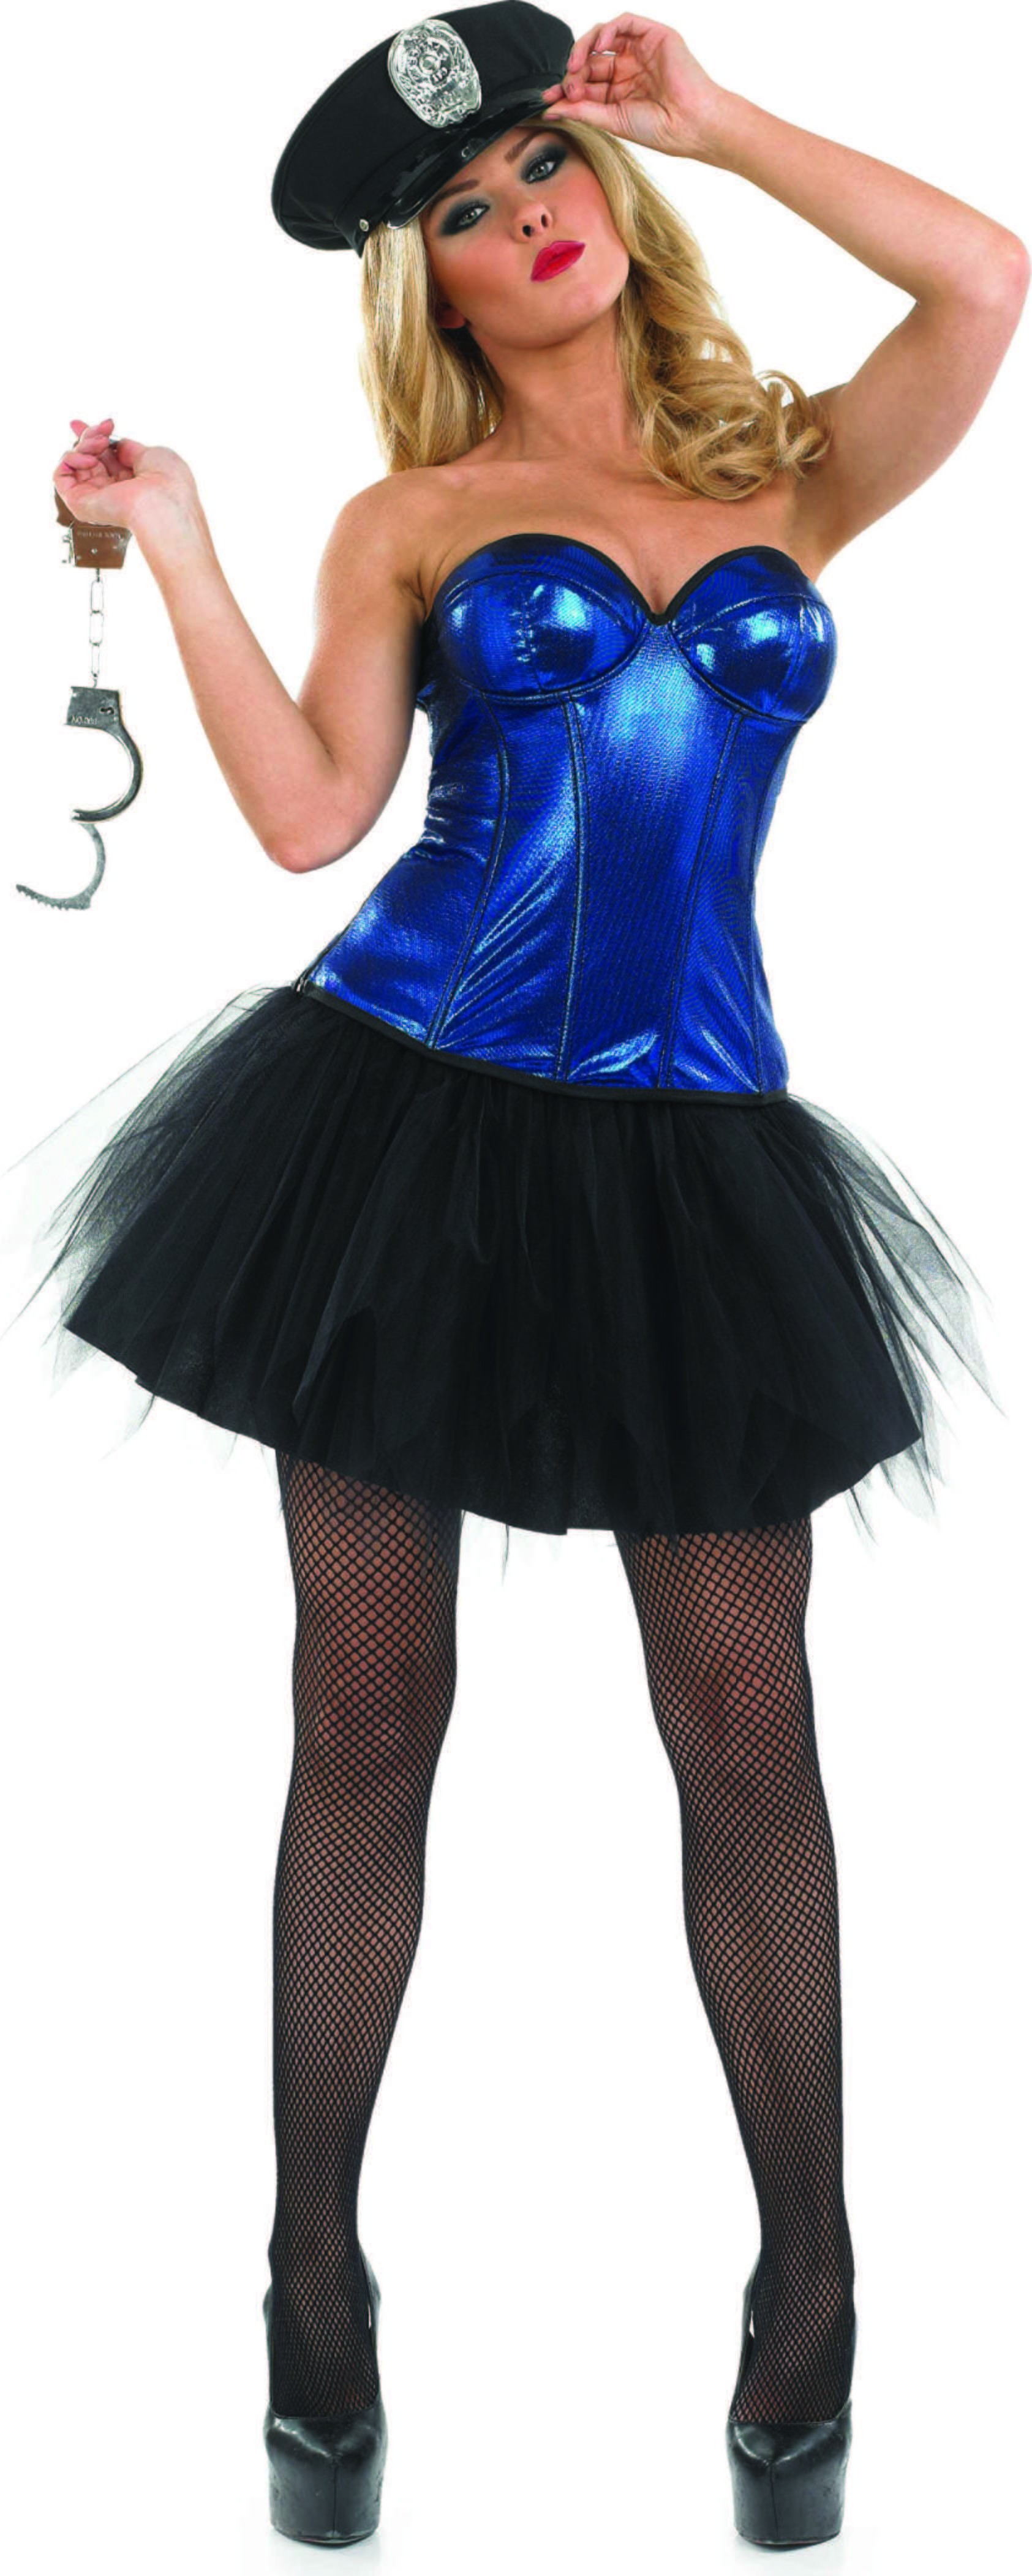 Ladies Tutu Cop Tutus - (Blue, Black)